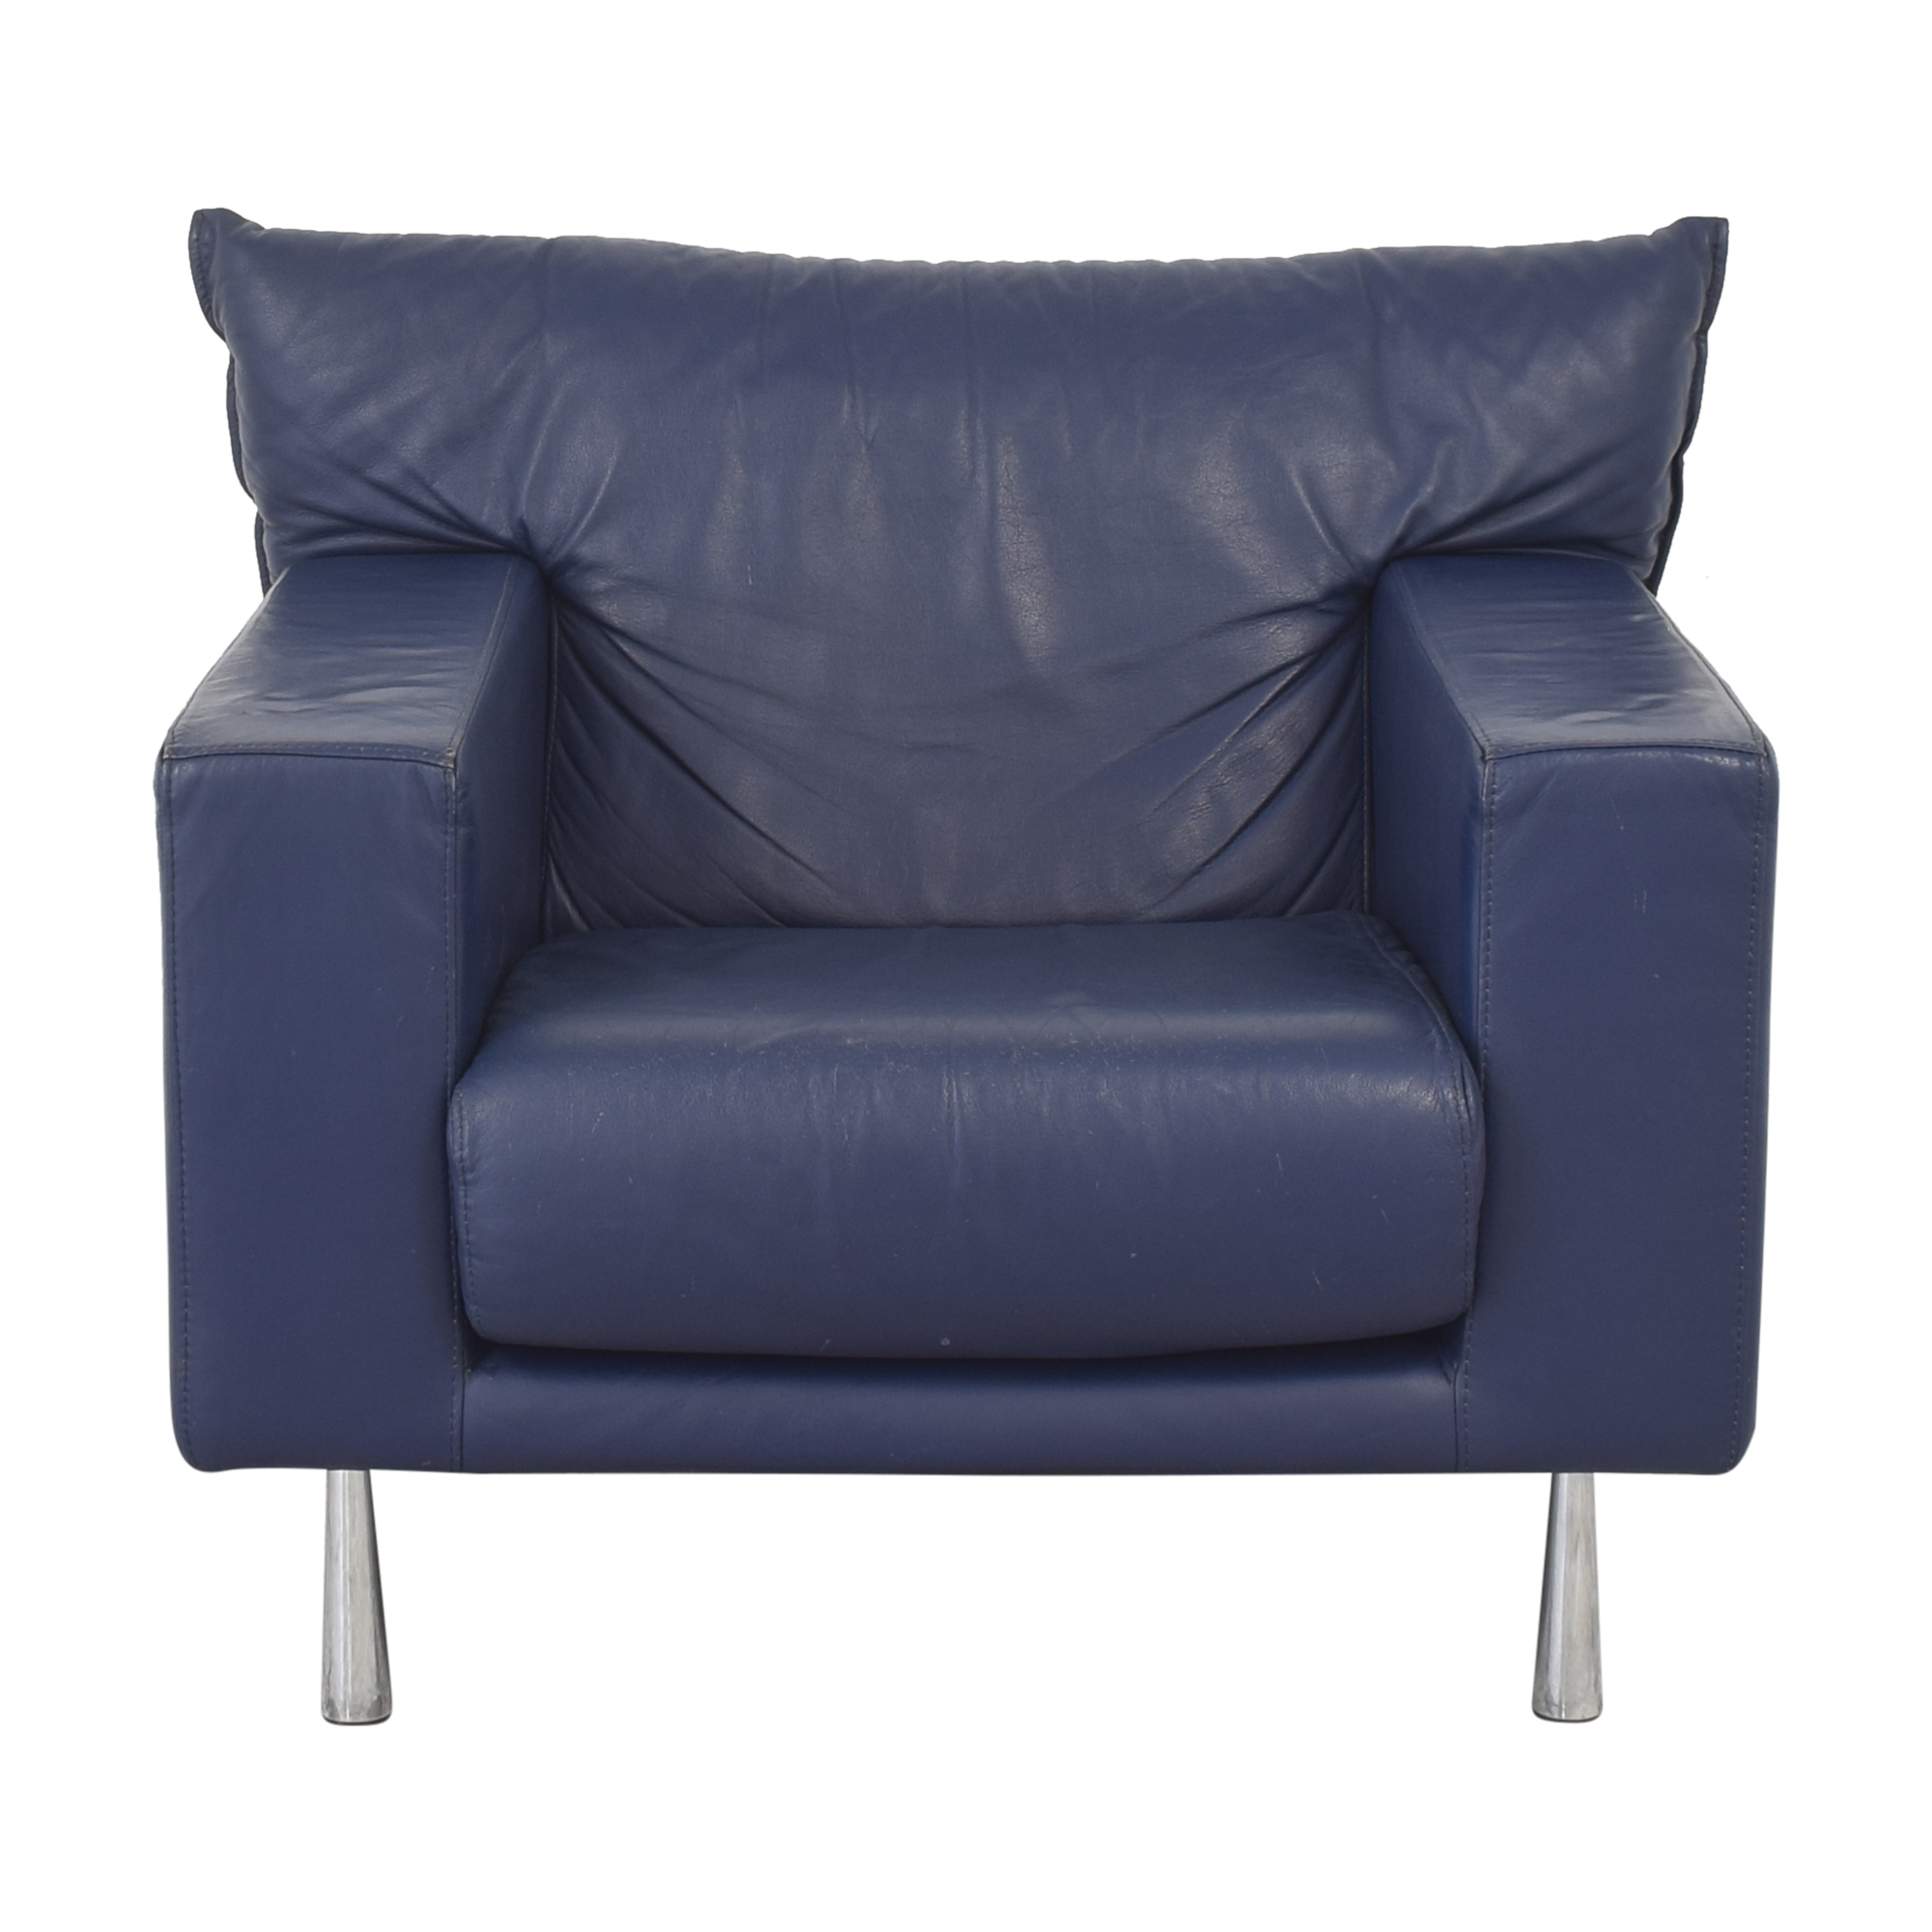 Maurice Villency Modern Style Club Chair ma